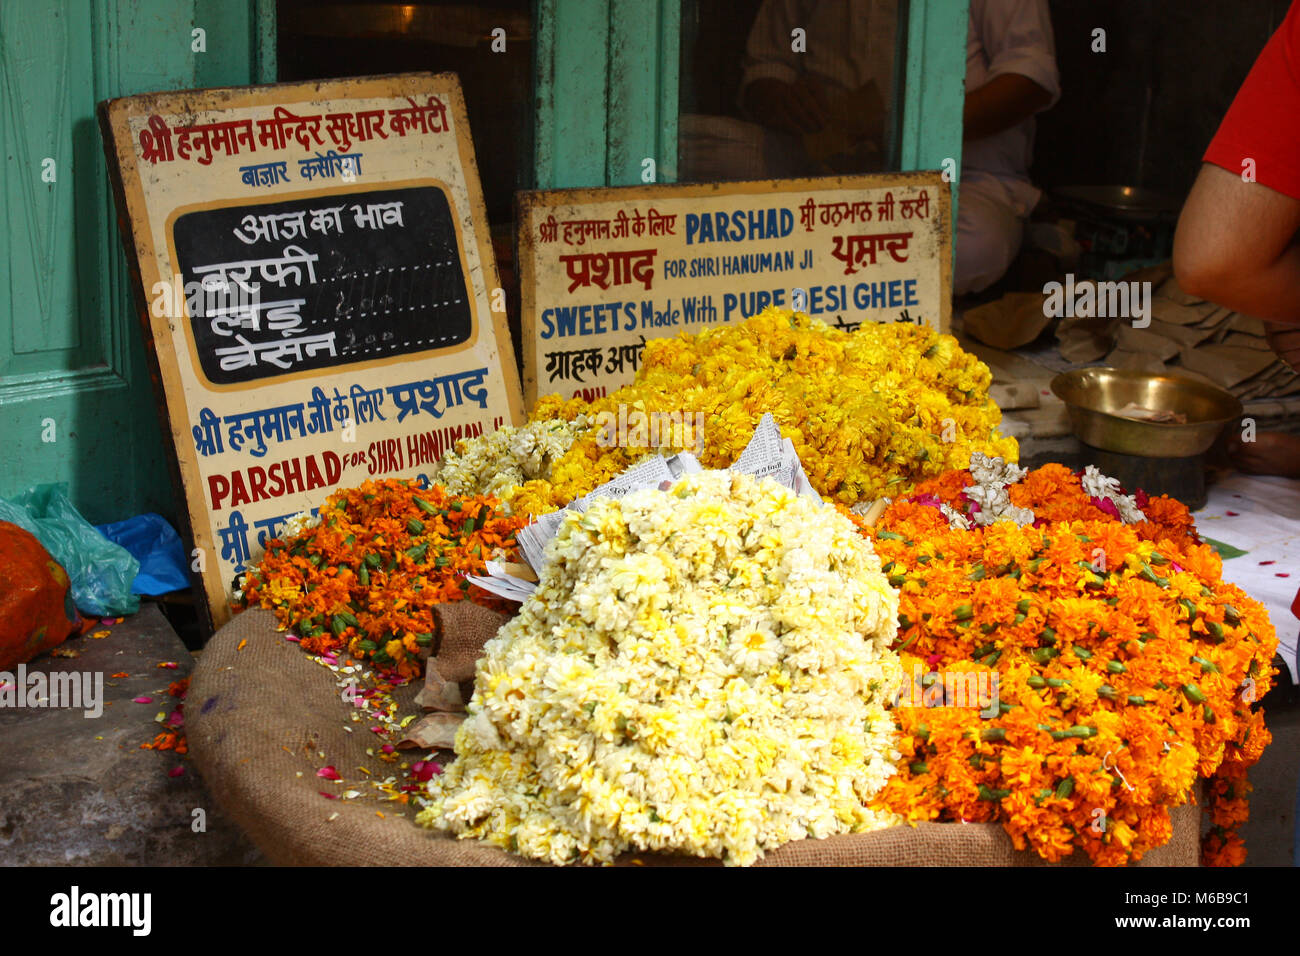 Bright yellow and orange flowers in a basket for sale for hinduist offerings in a market in Amritsar, India. - Stock Image